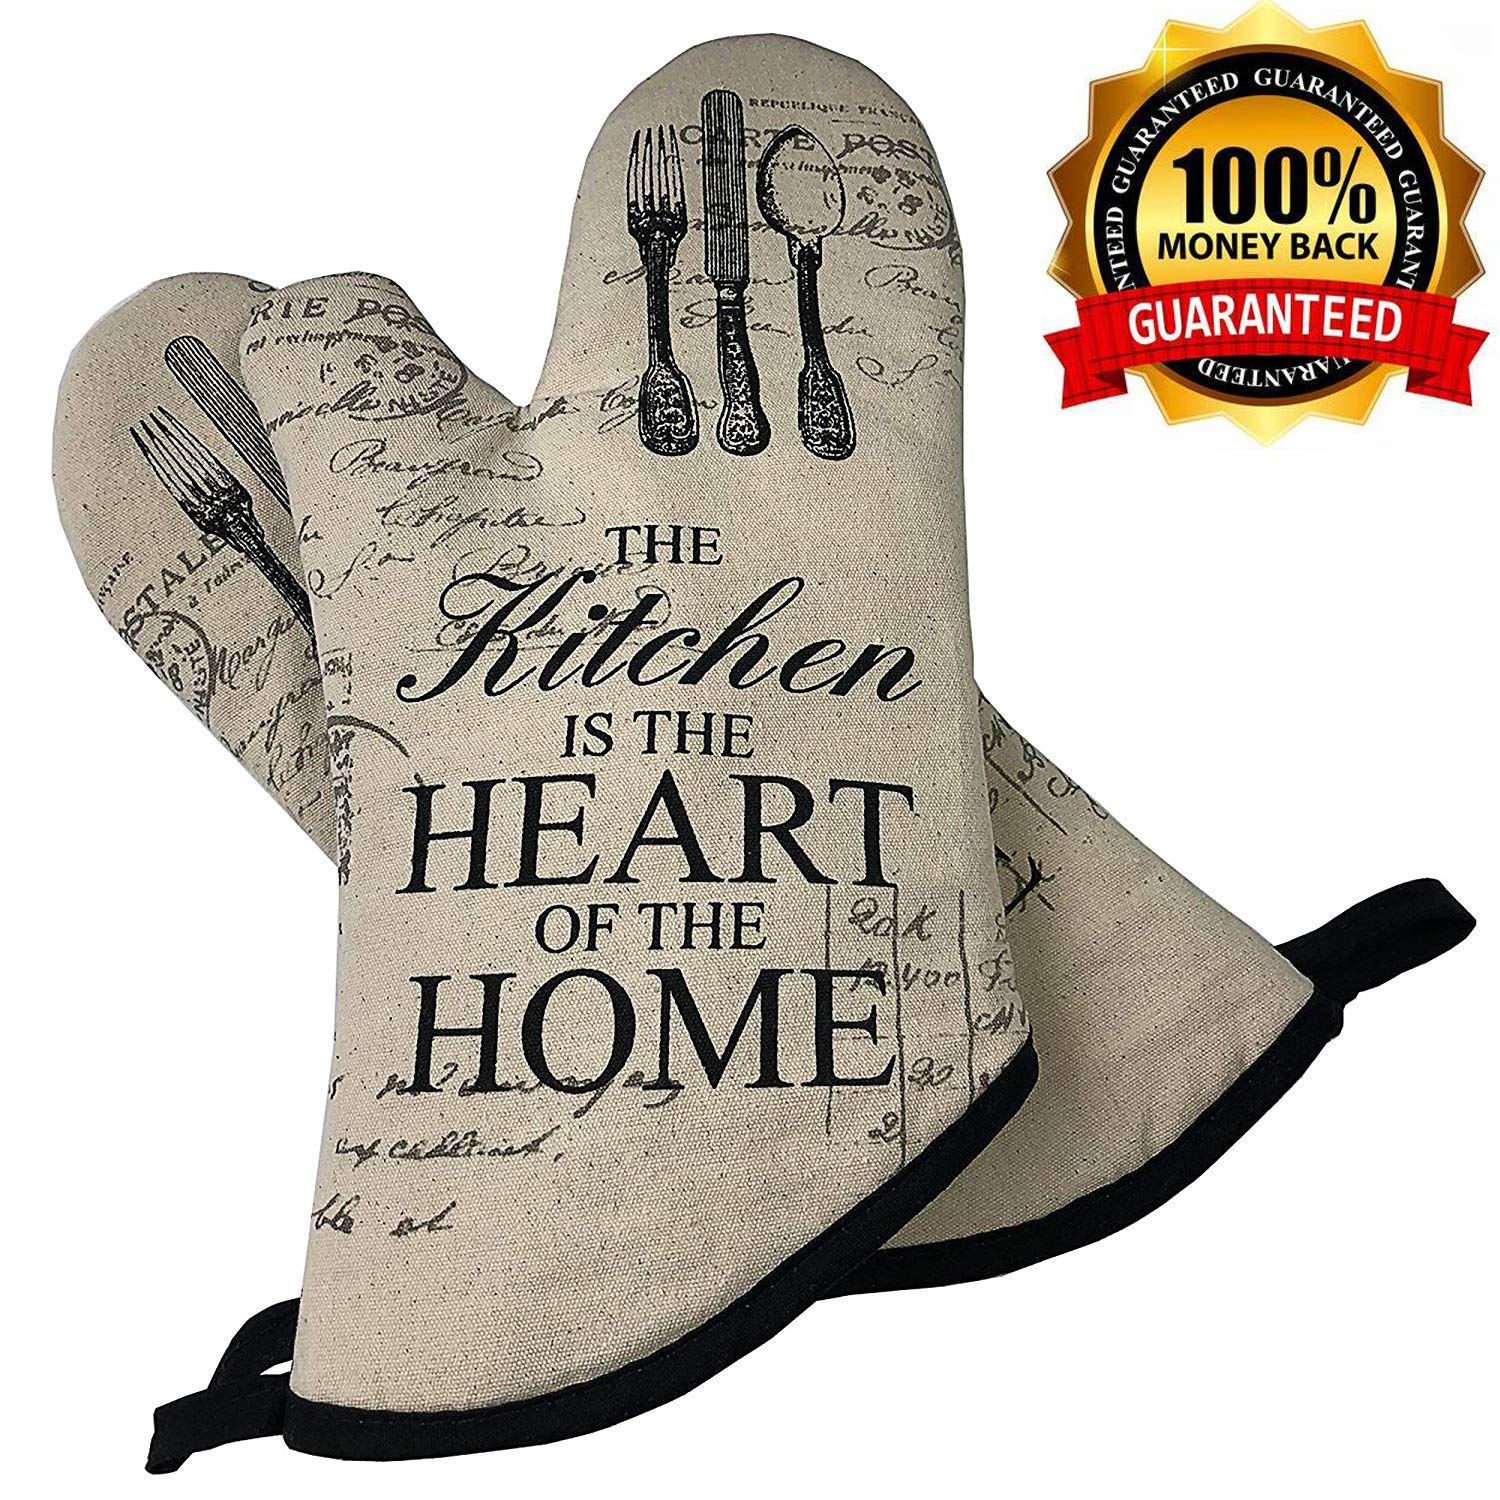 AicLuze Oven Mitts - Microwave Oven Glove Heat Resistant to 500℉, Soft Cotton Lining with Non-Slip Surface for BBQ, Food, Grilling, Frying, Baking Premium Insulated Durable Machine Washable